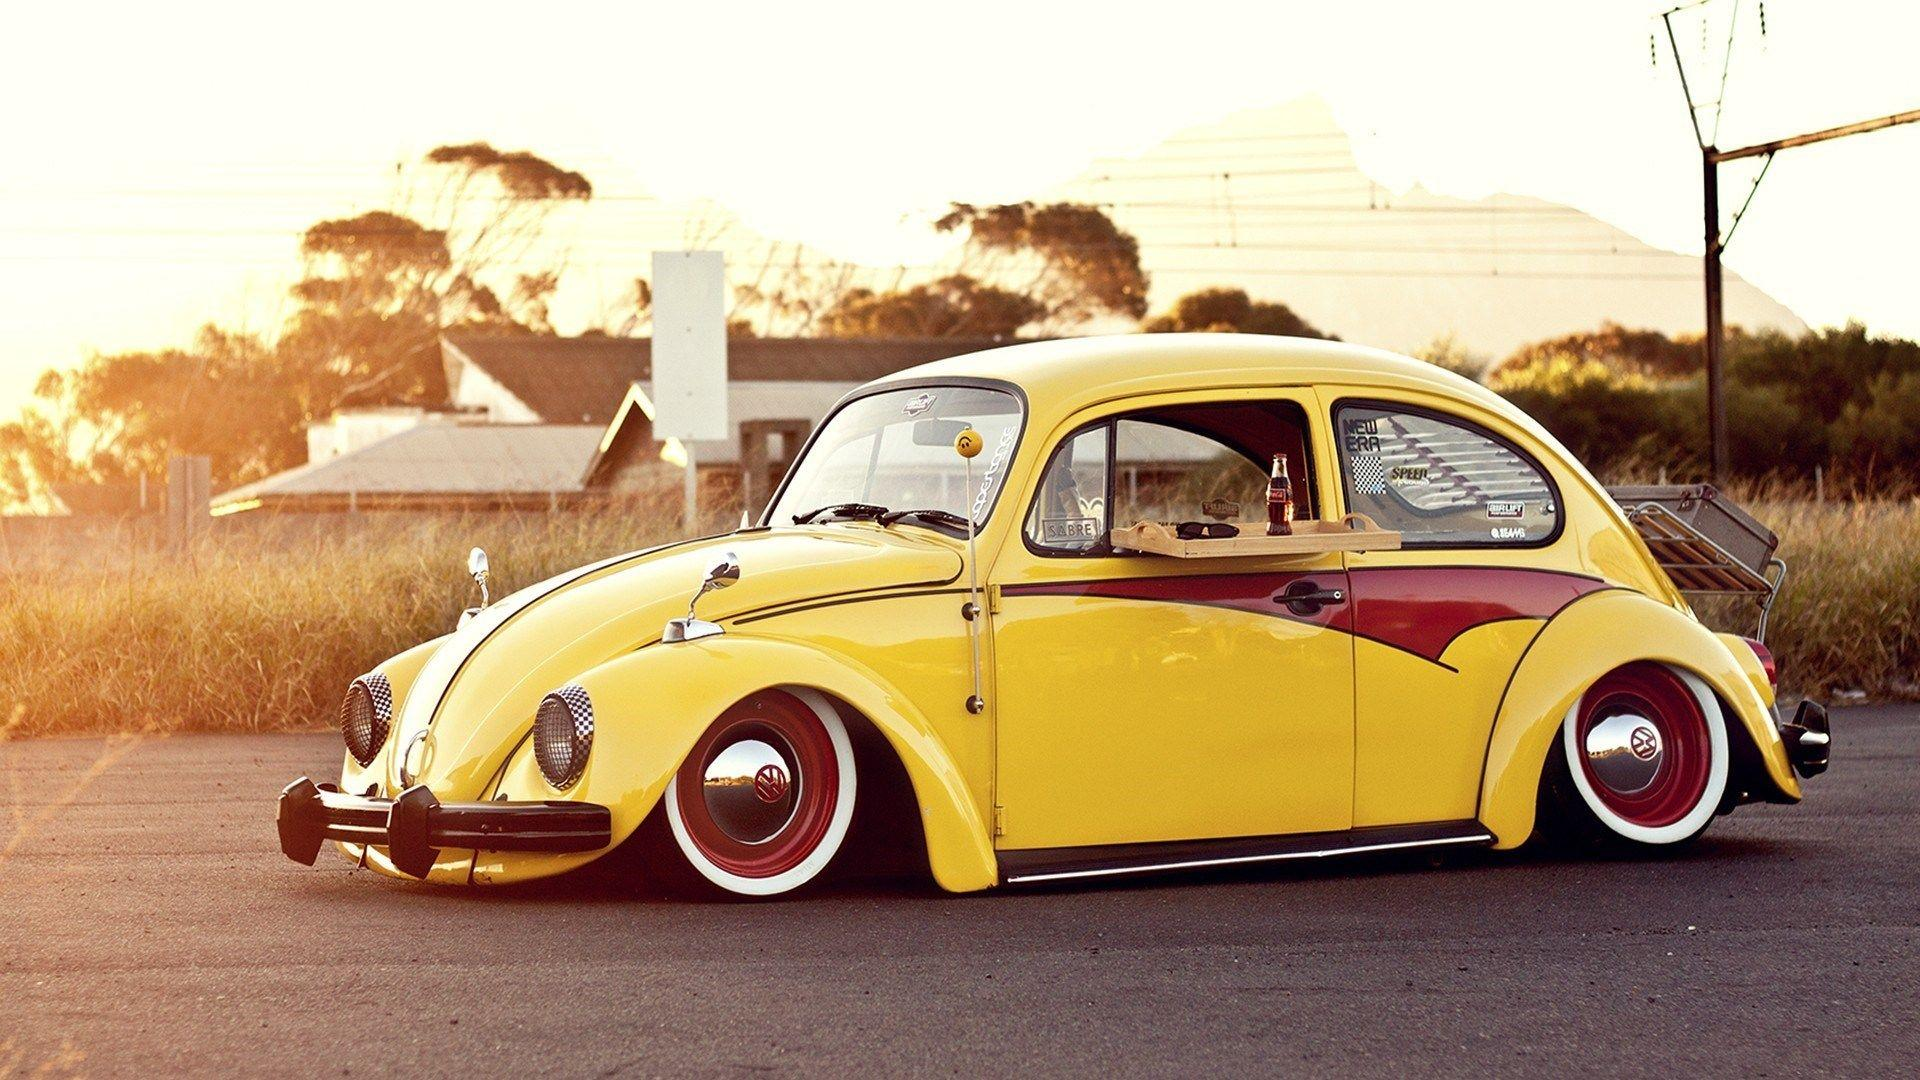 Wooden Tray Cola Meal Volkswagen Bug Beetle Classic HD Wallpaper ...